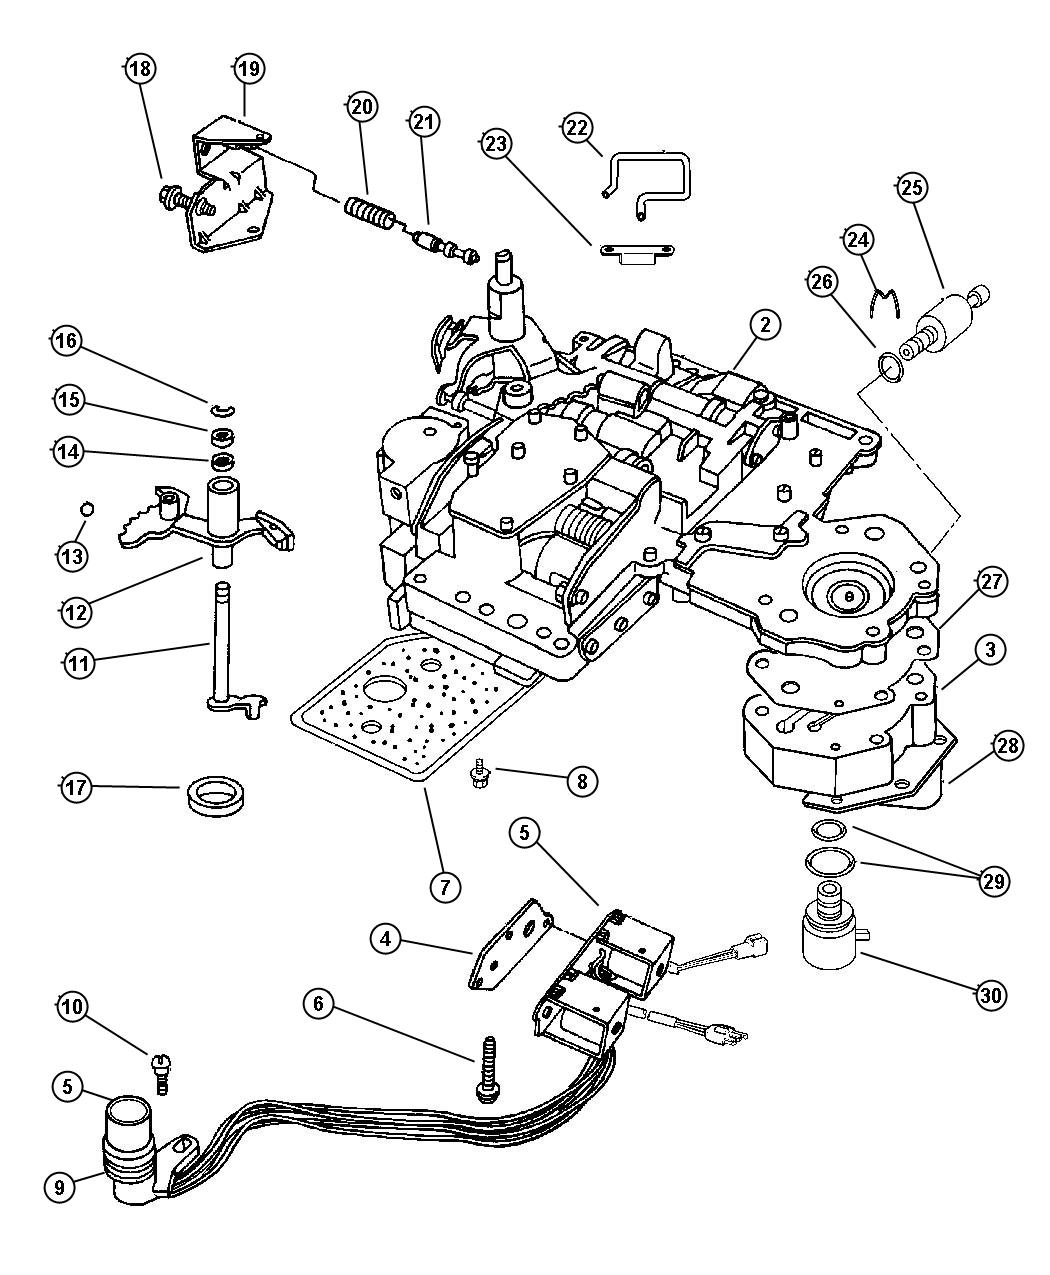 2000 Dodge Neon Engine Diagram Car Interior Design